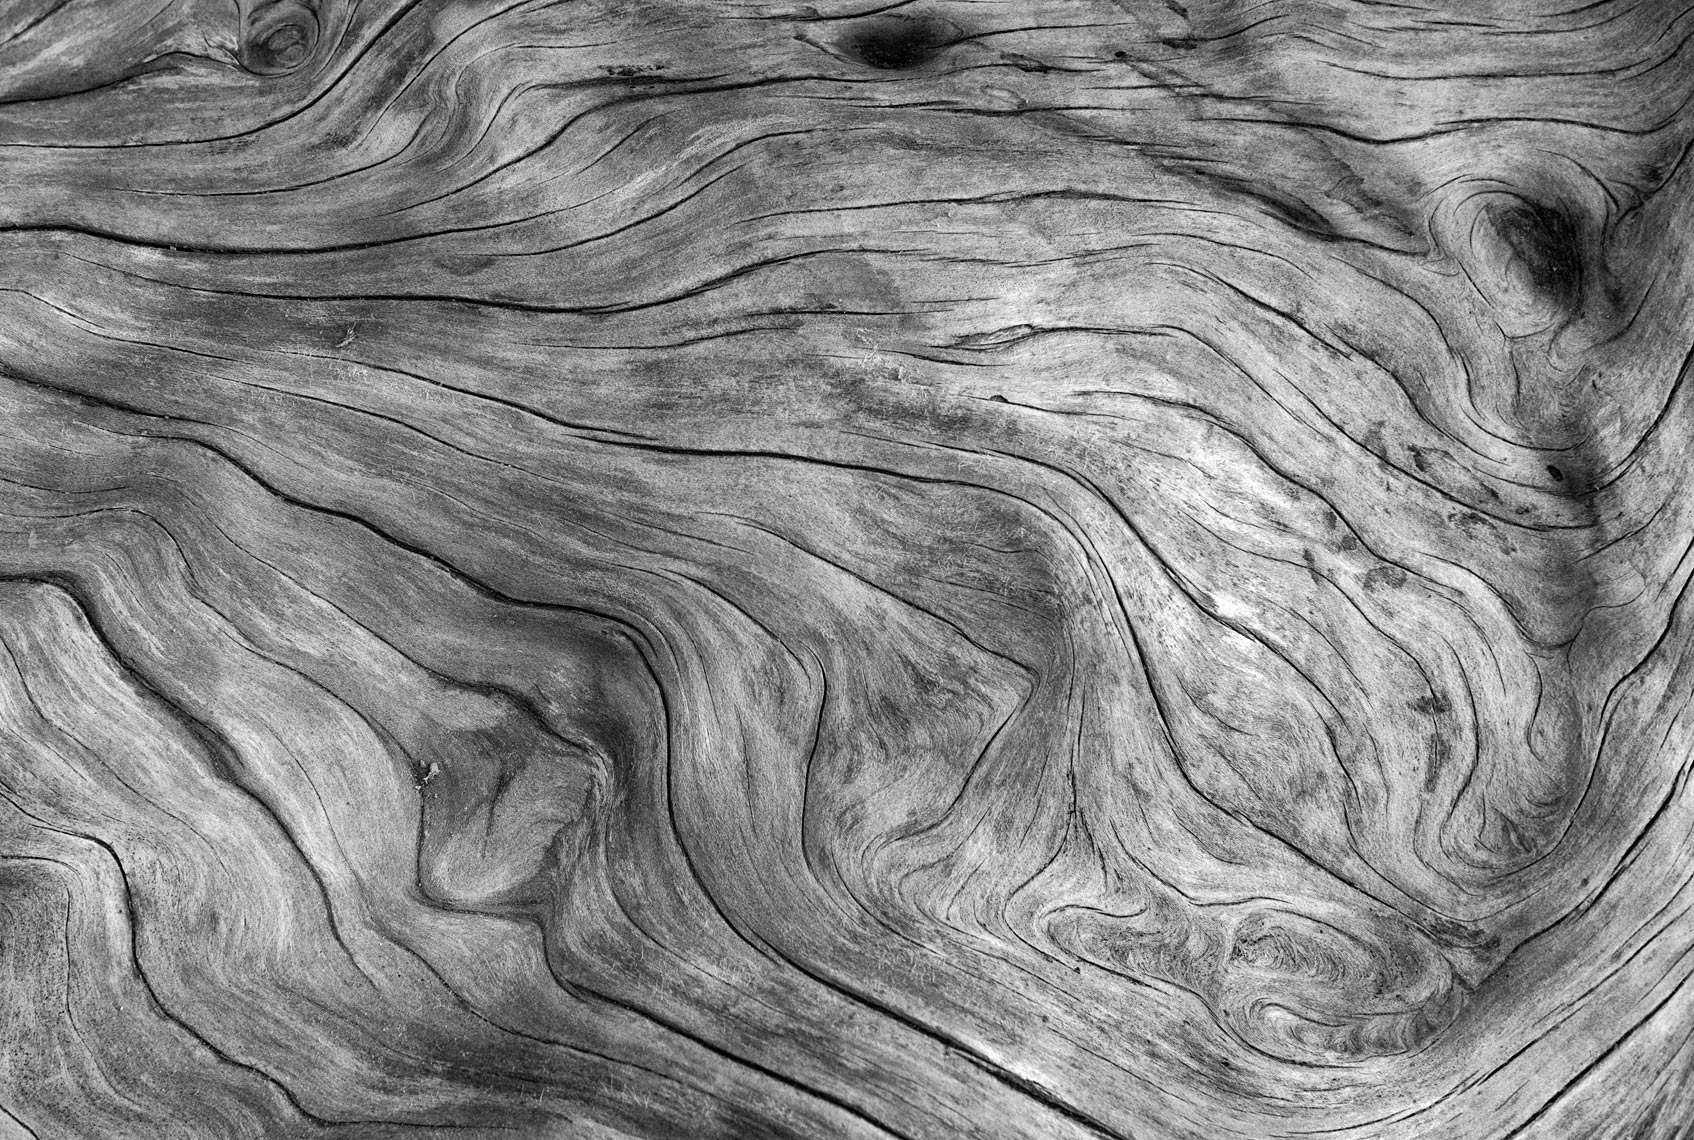 Driftwood in monochrome